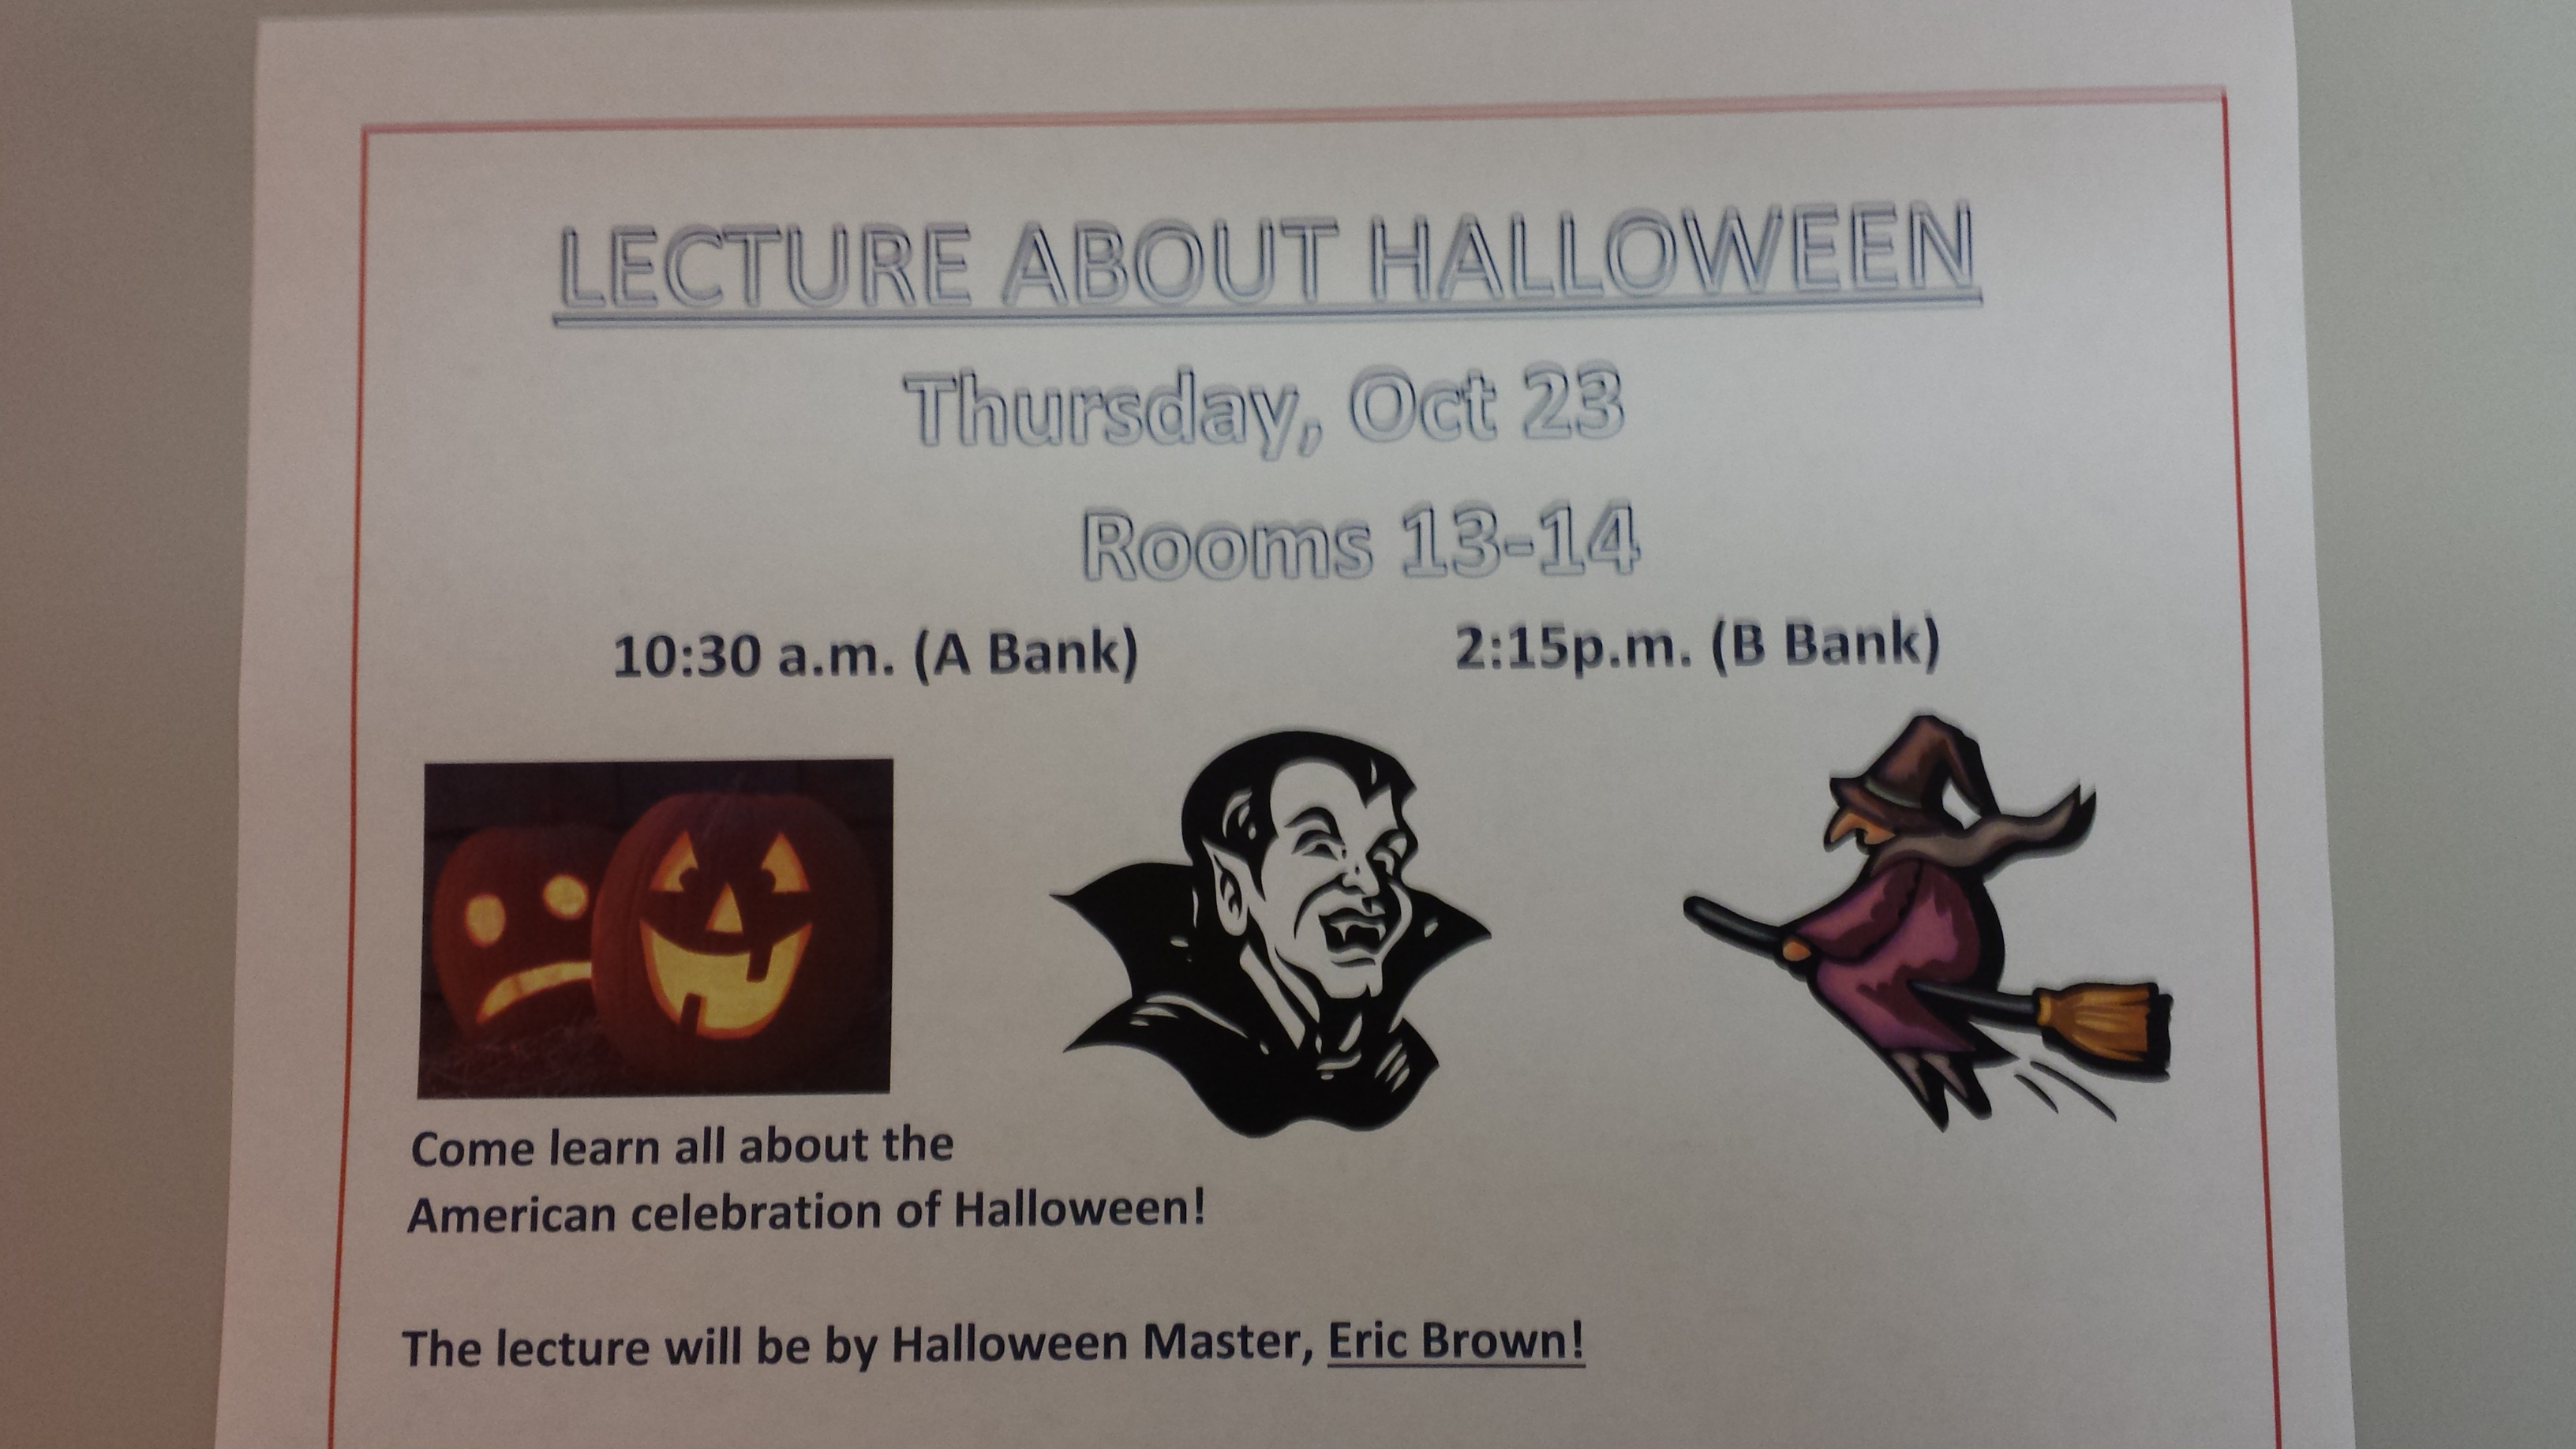 Halloween Lecture